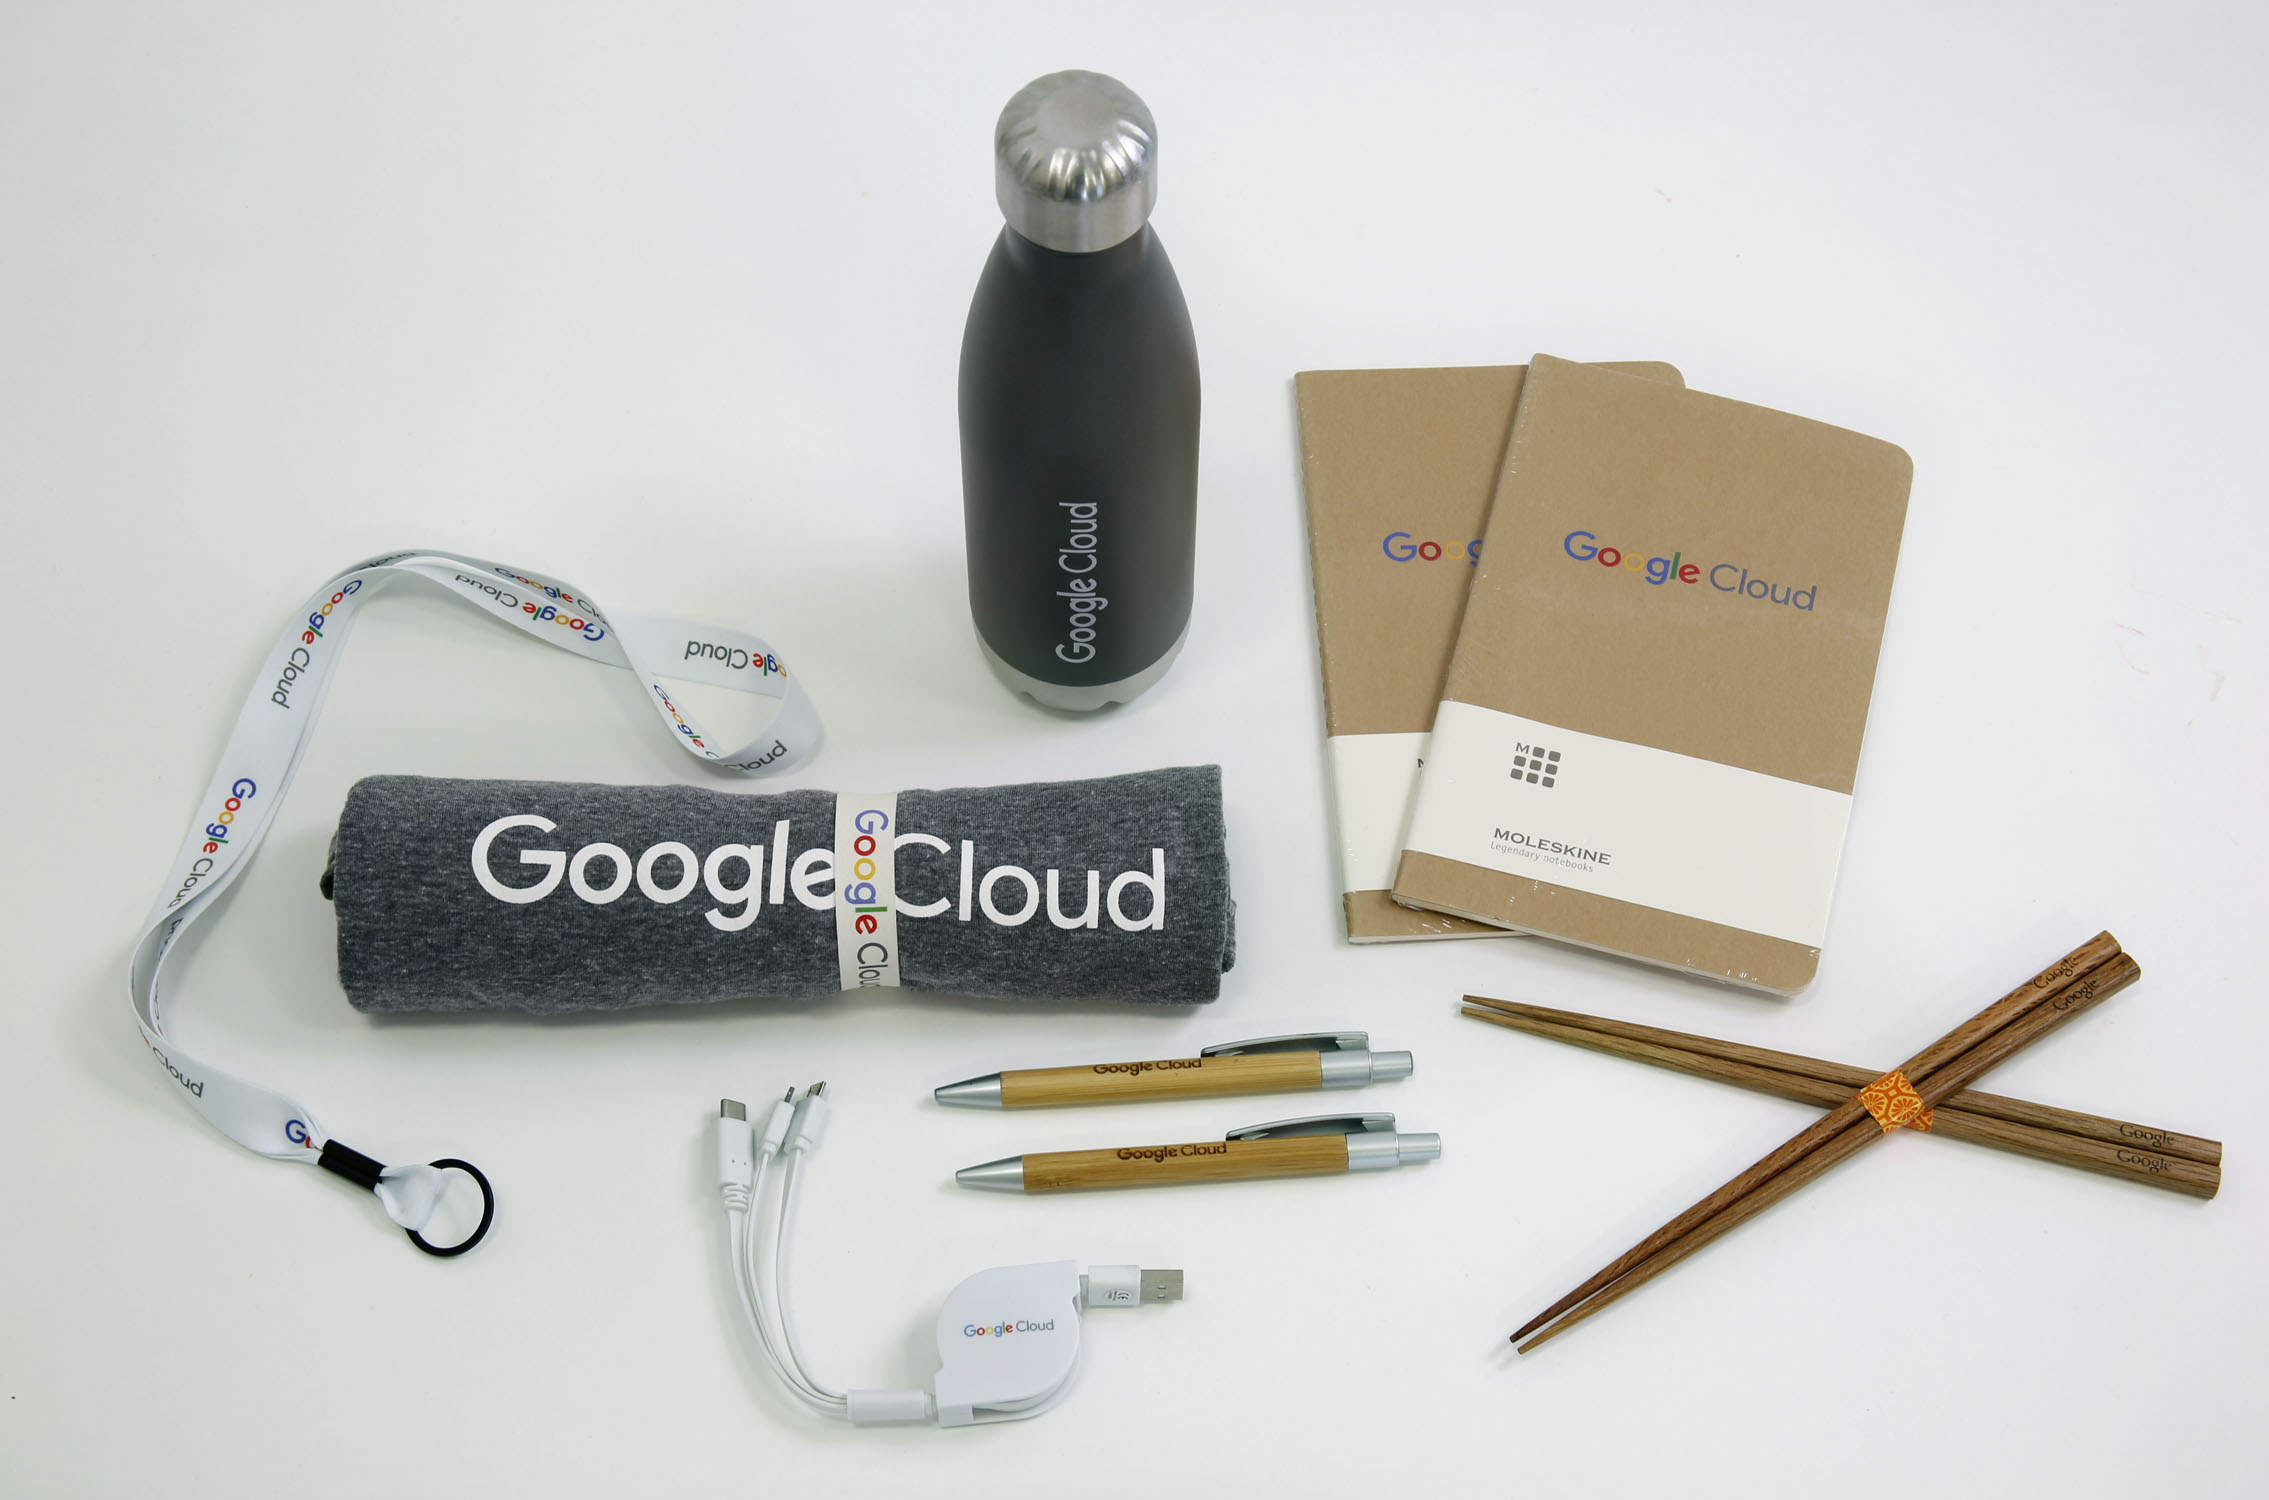 Google Cloud = eco-friendly, all the way